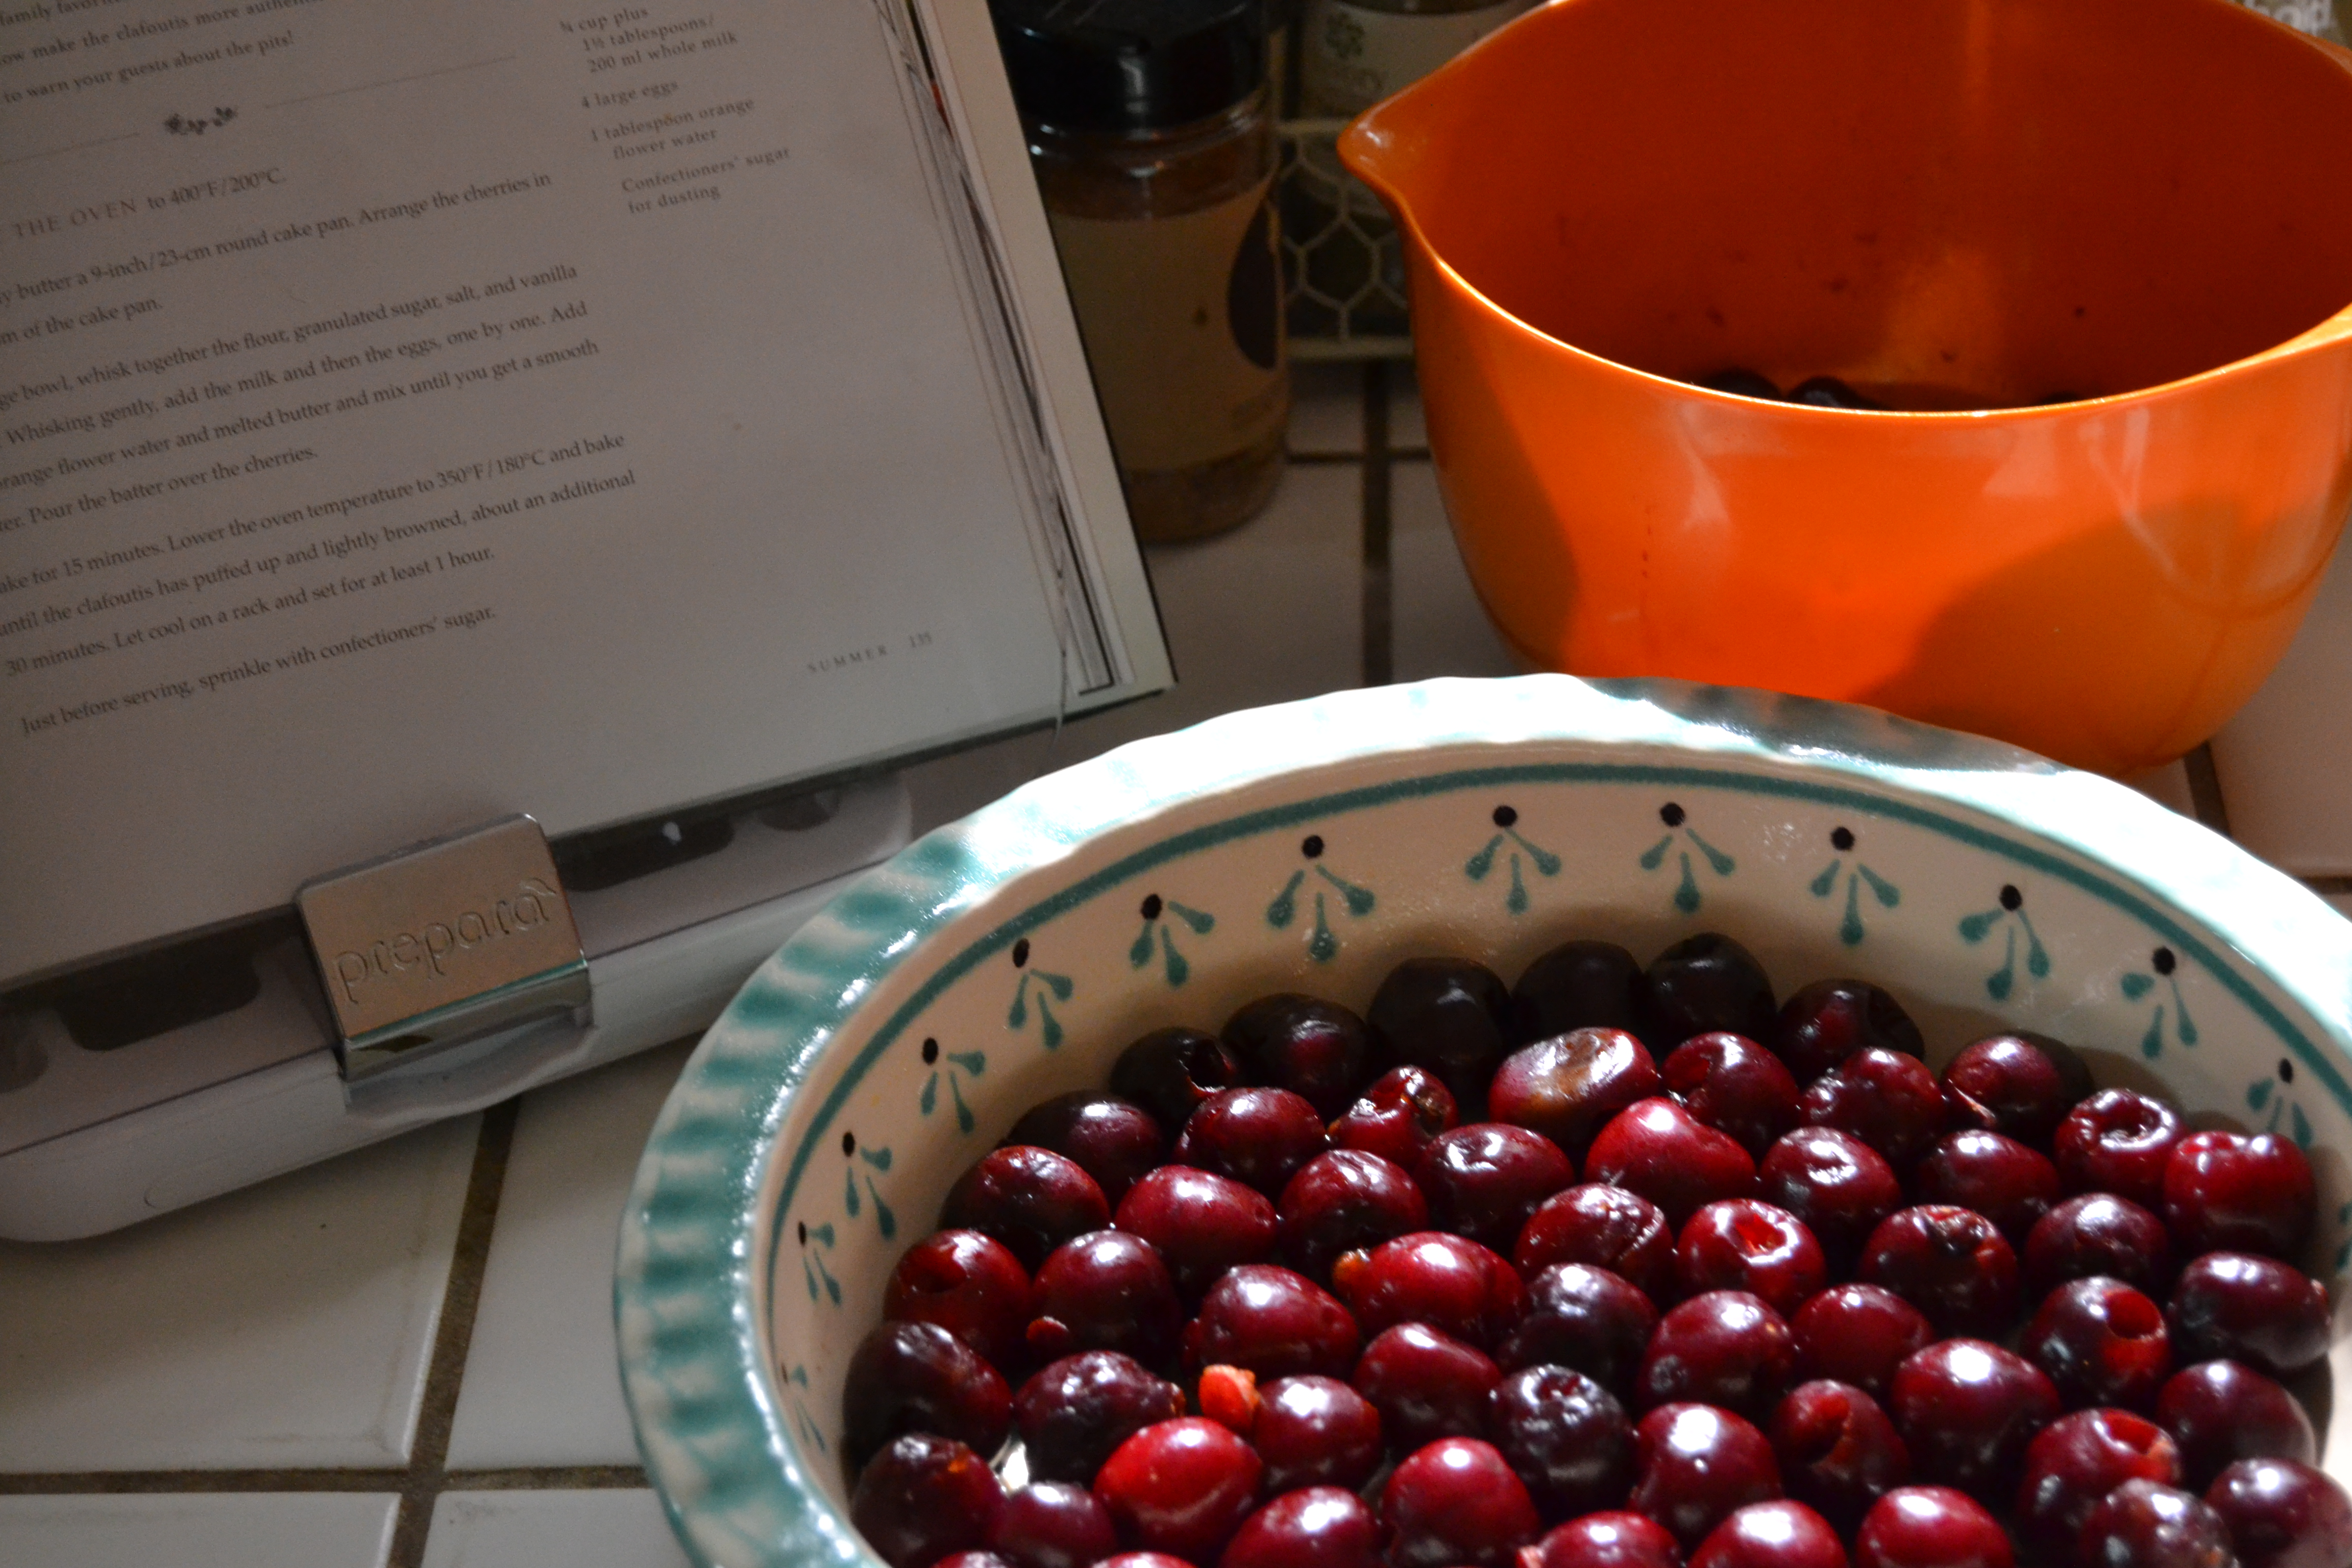 Pitted Cherries for Cherry Clafoutis